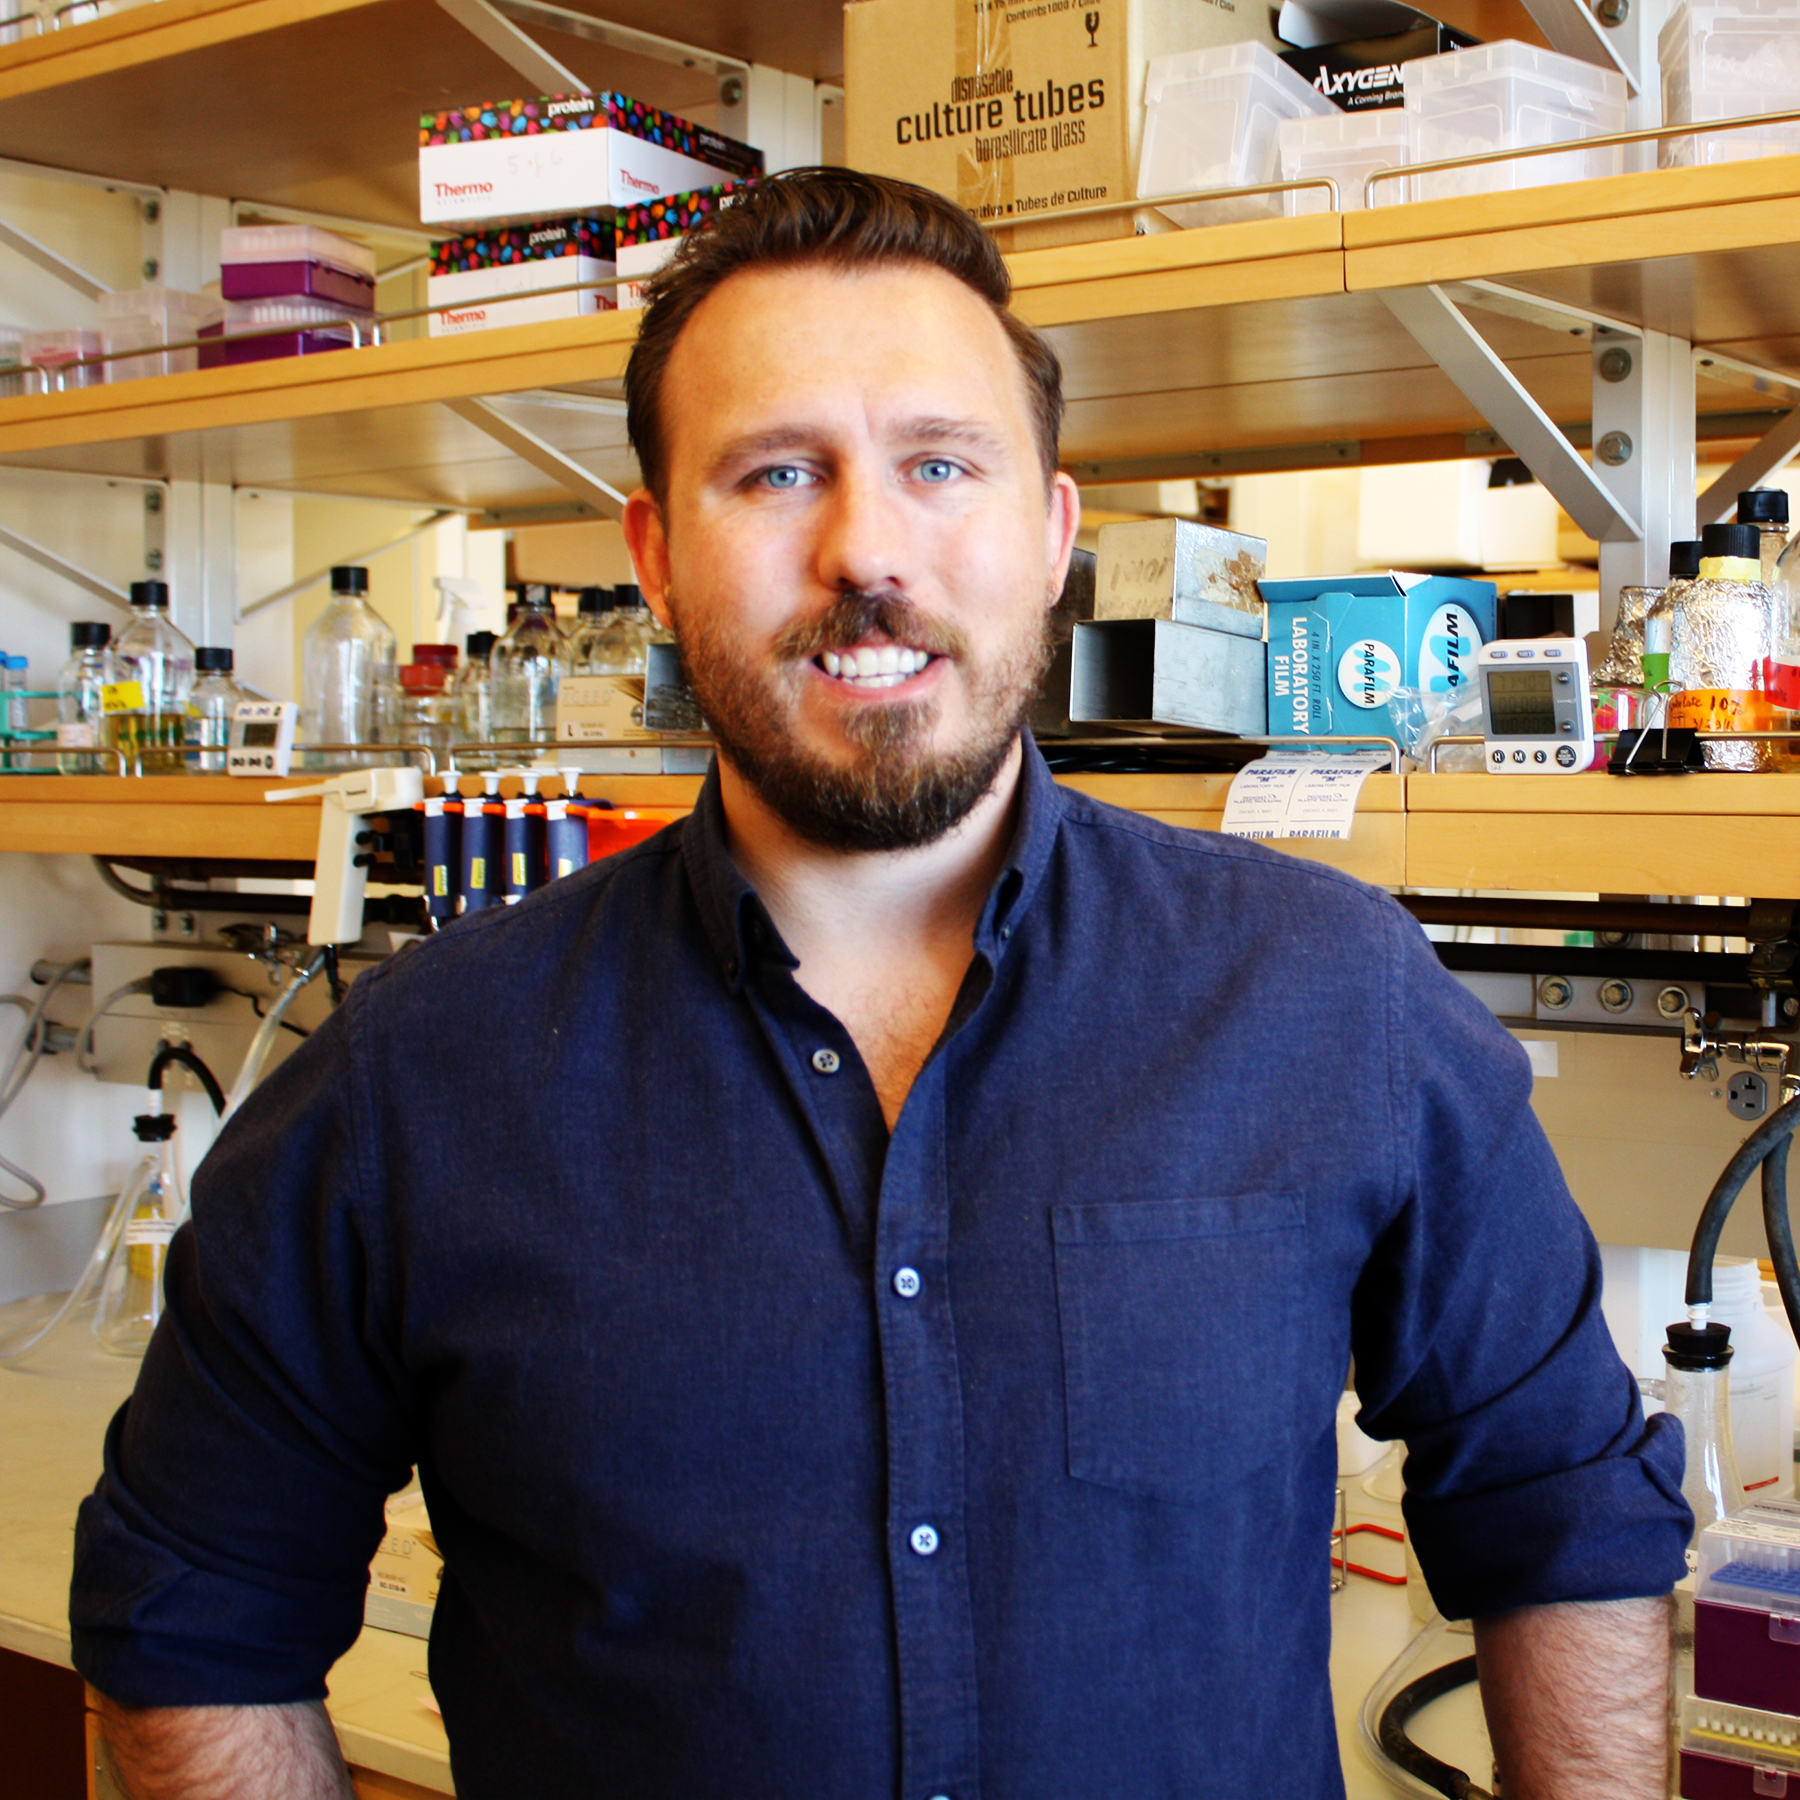 A smiling man with brown hair and a beard wearing a navy blue buttoned shirt standing in front of a lab bench with shelves full of research supplies.